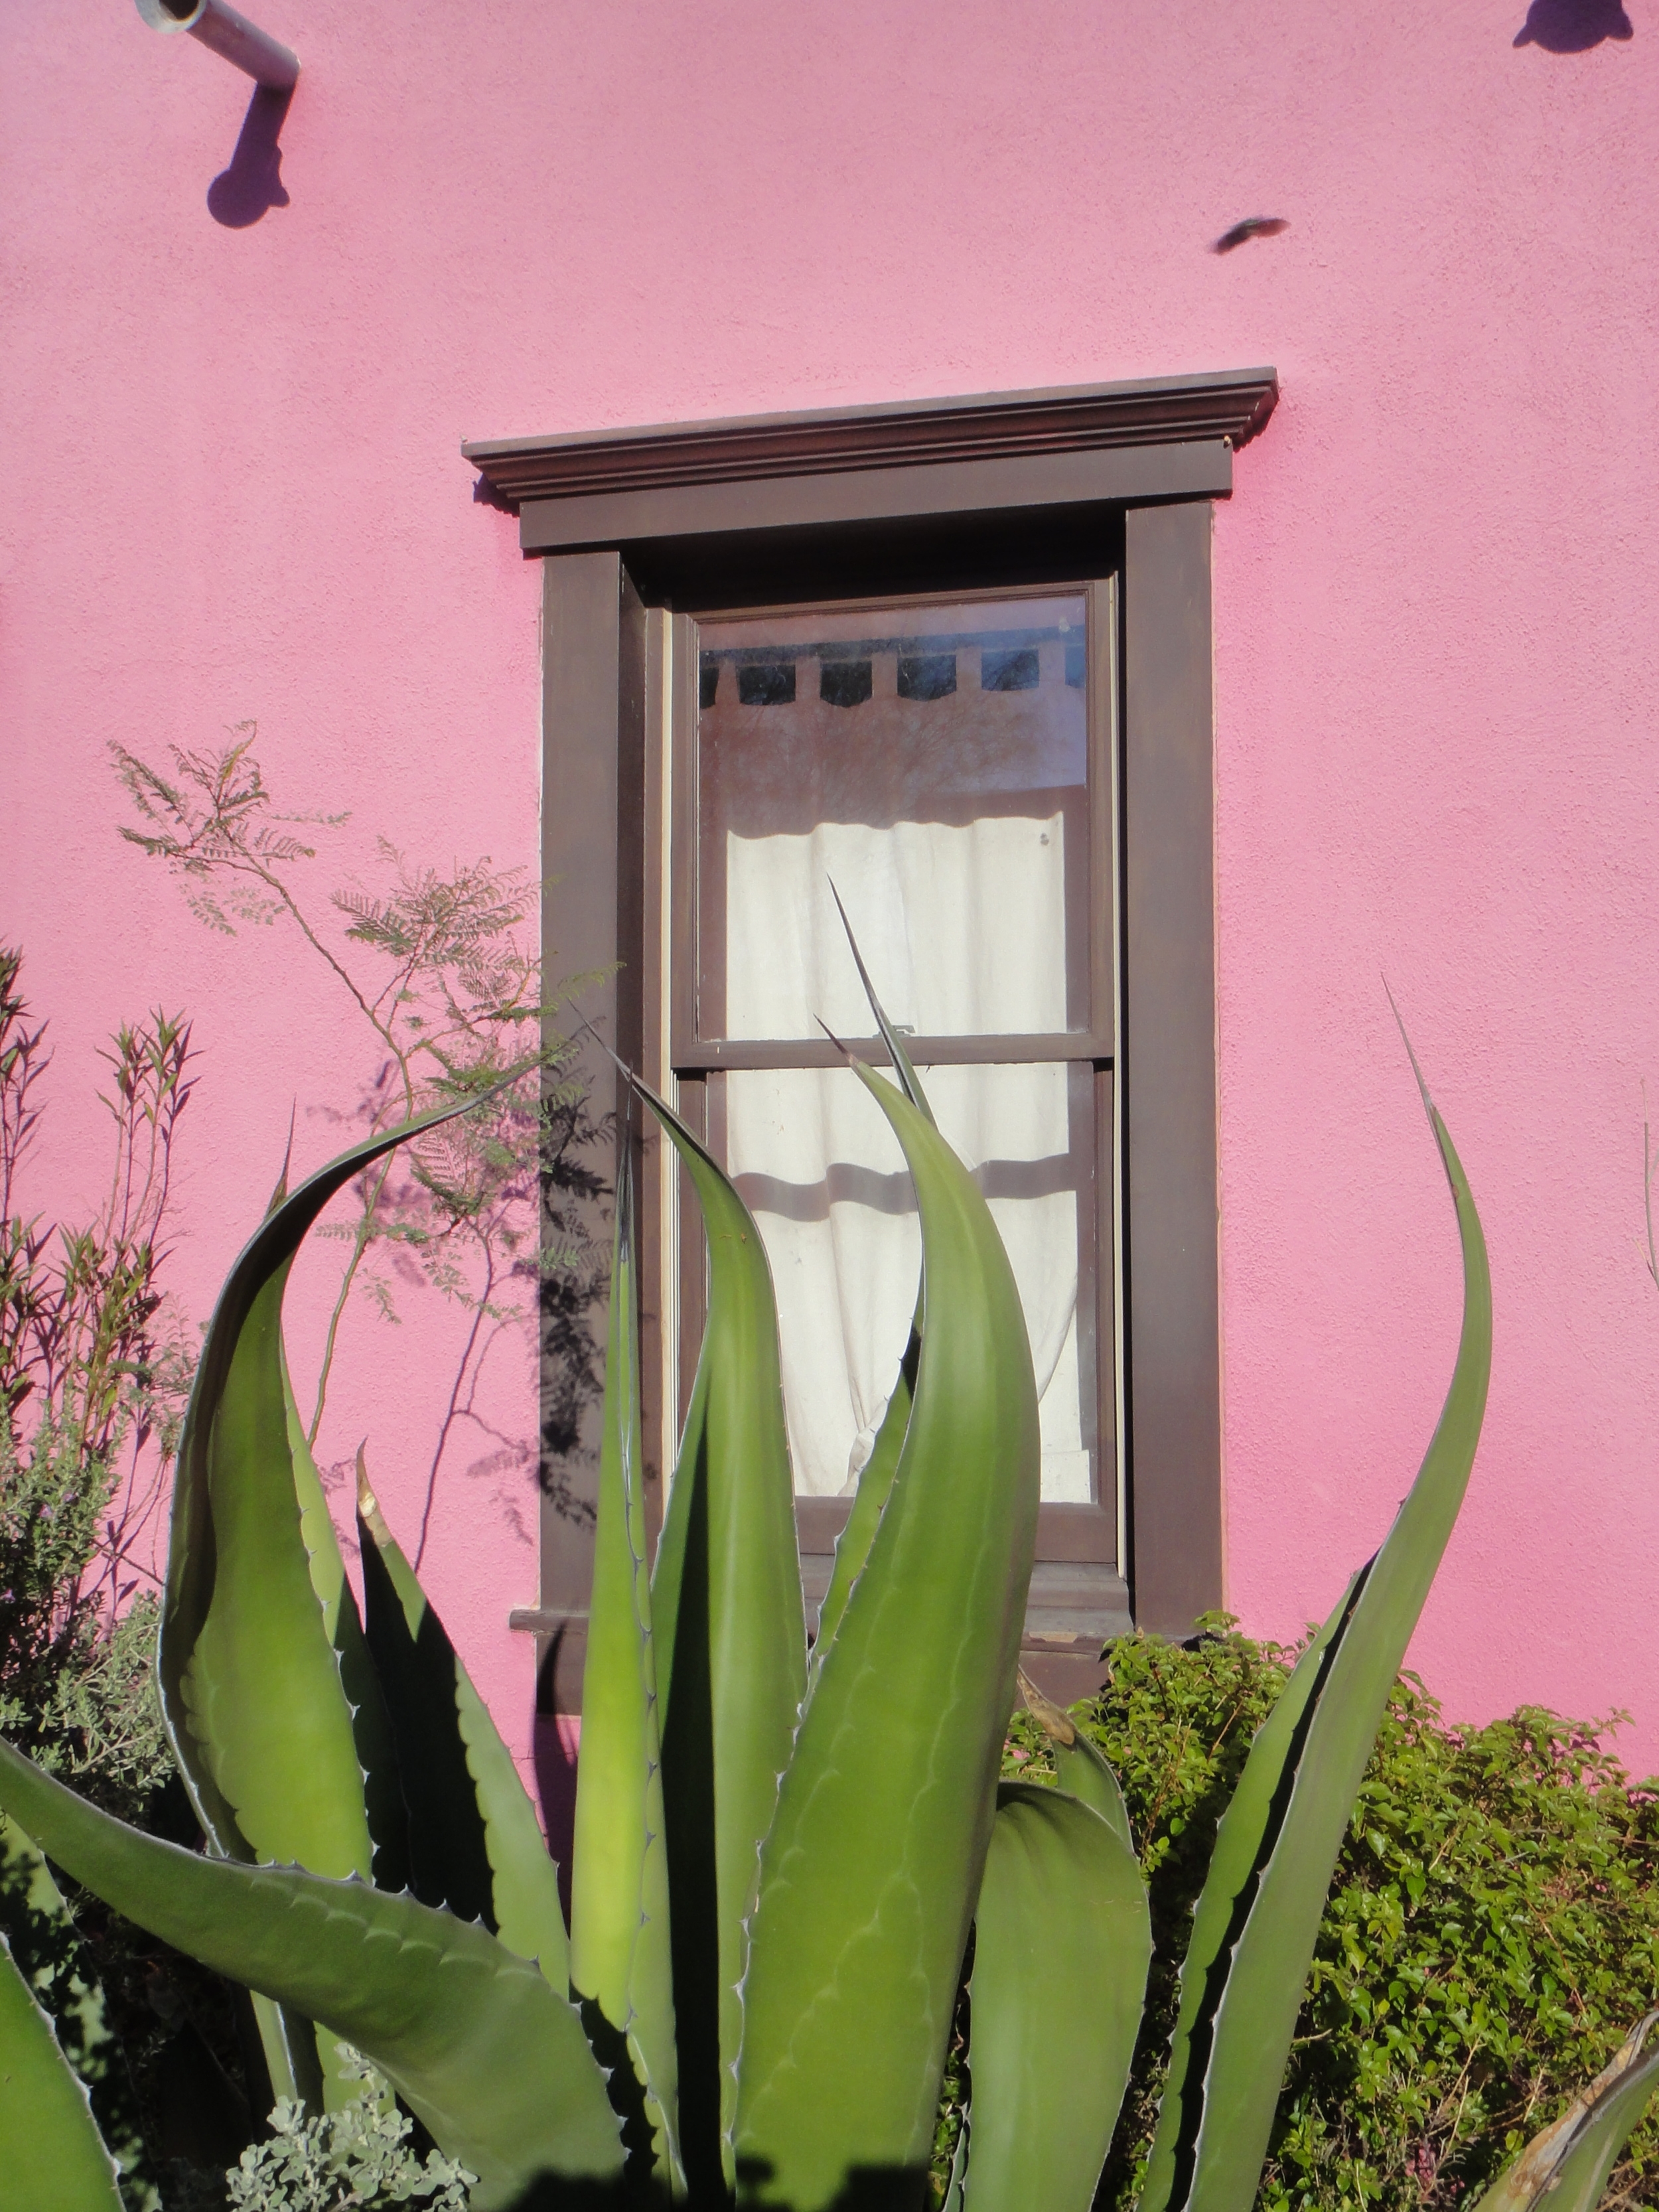 Tucson has lots of pink, from sherbet to Pepto-Bismol.